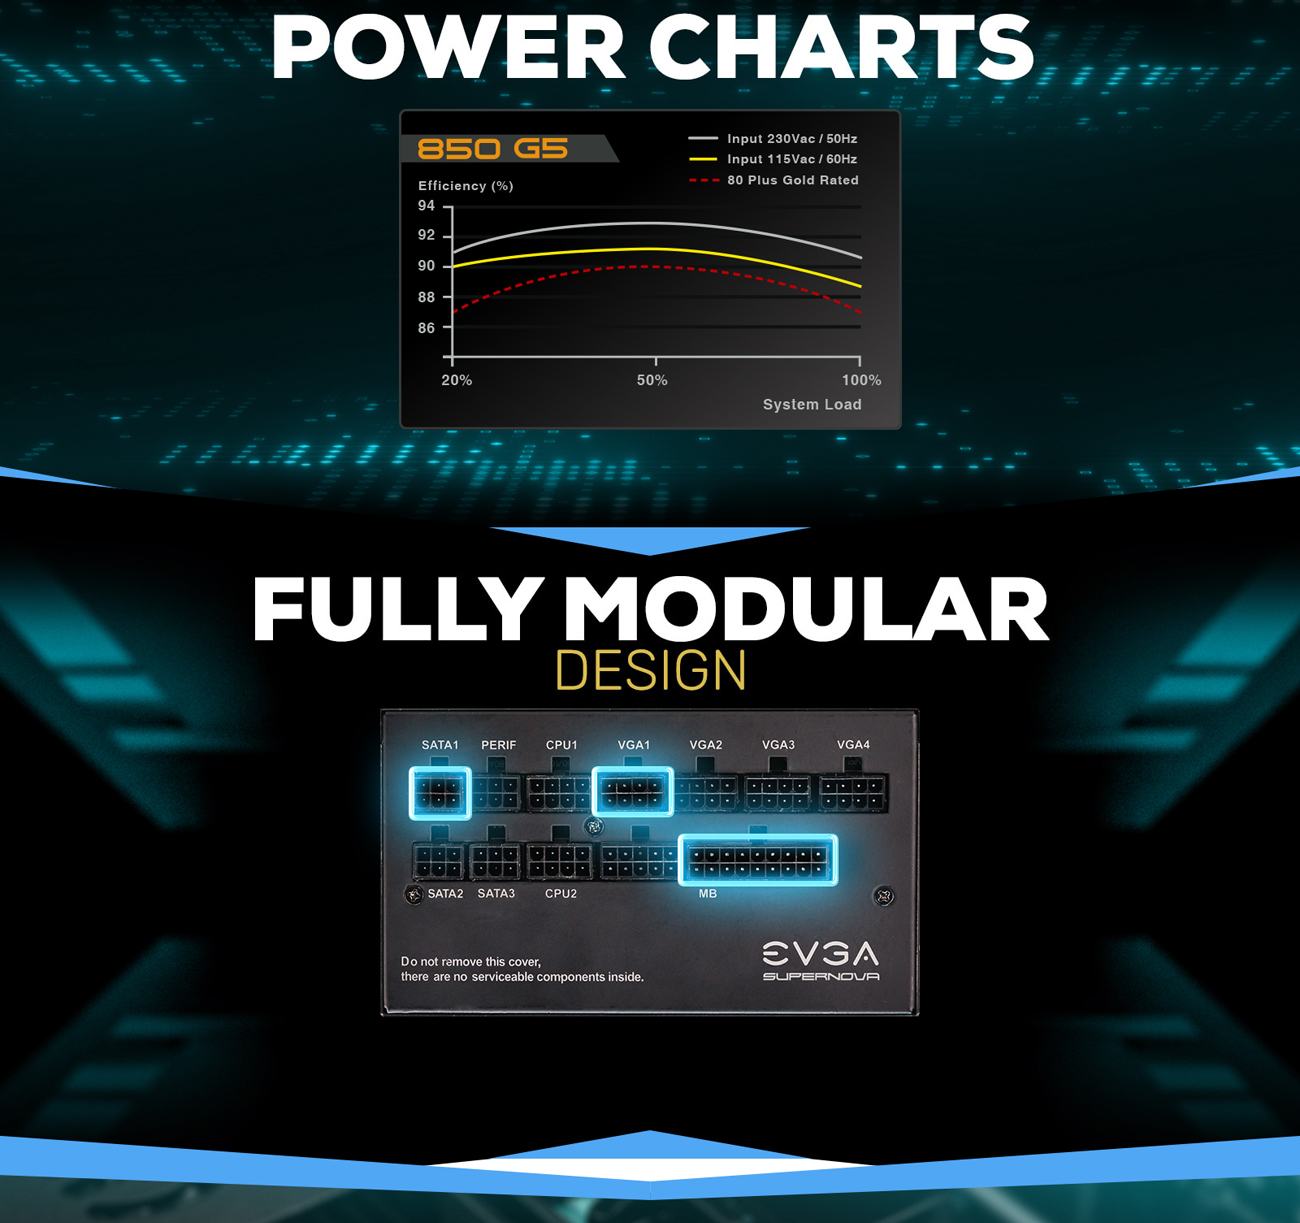 Power charts and fully modular ports